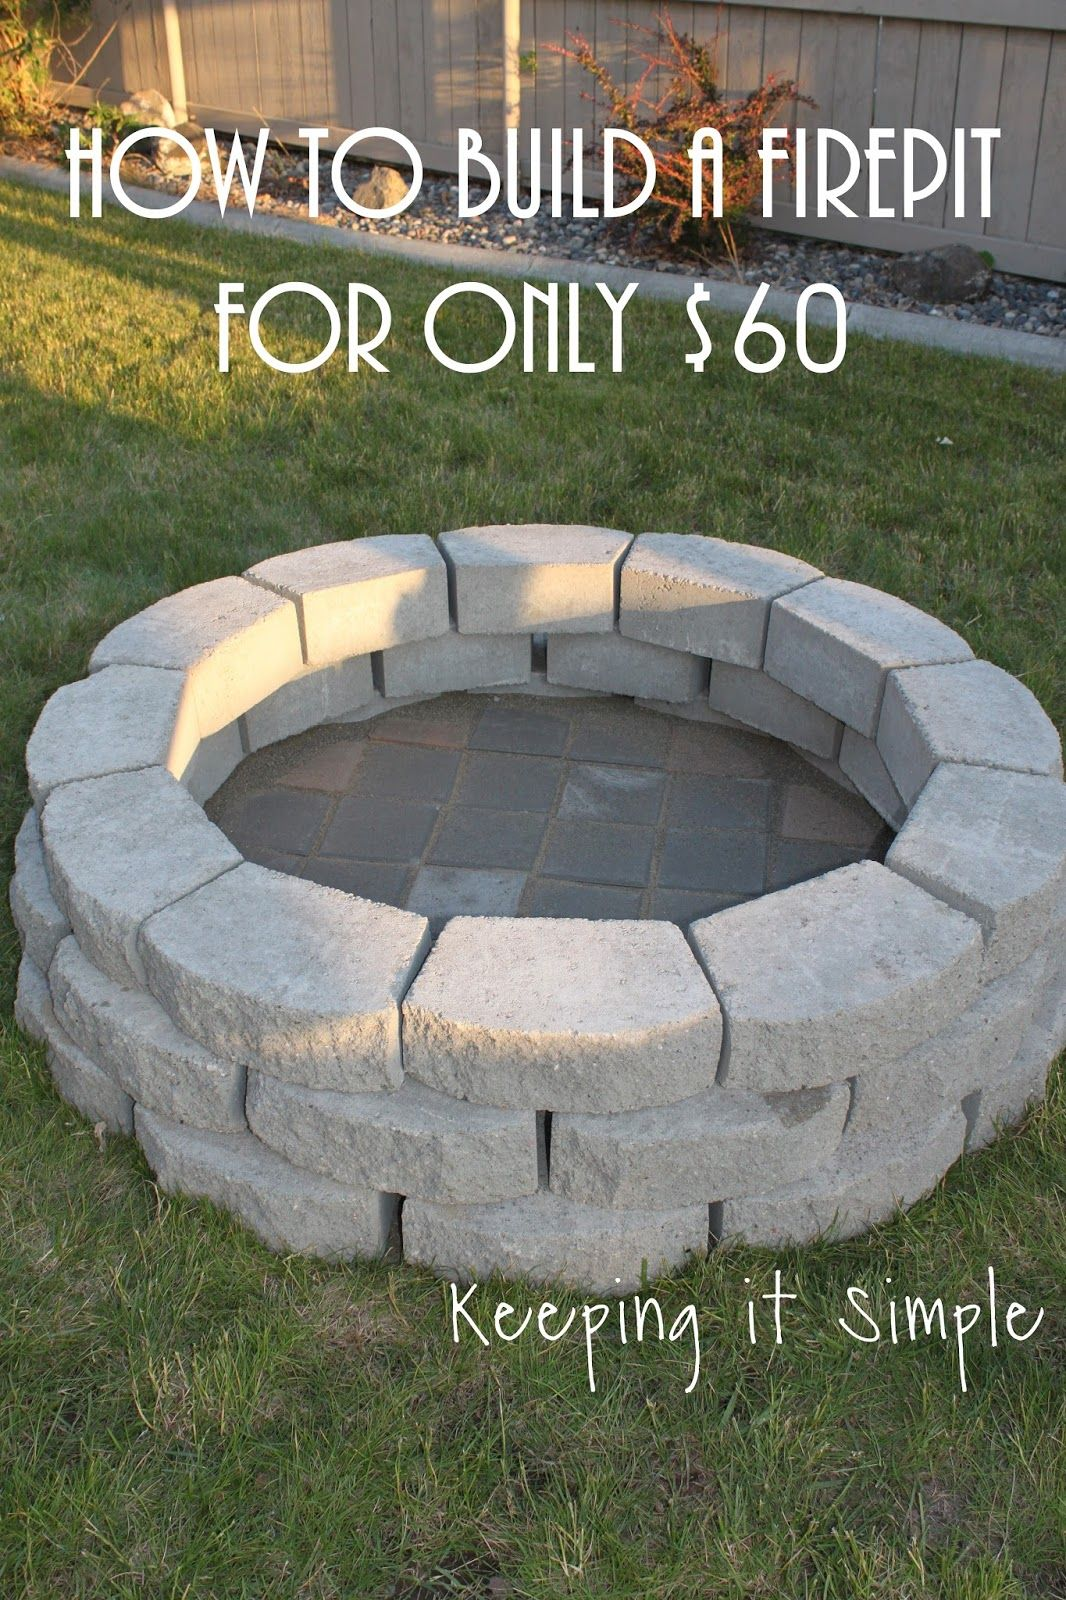 Best DIY Fire Pit Project Ideas  Page 16 of 19  Home